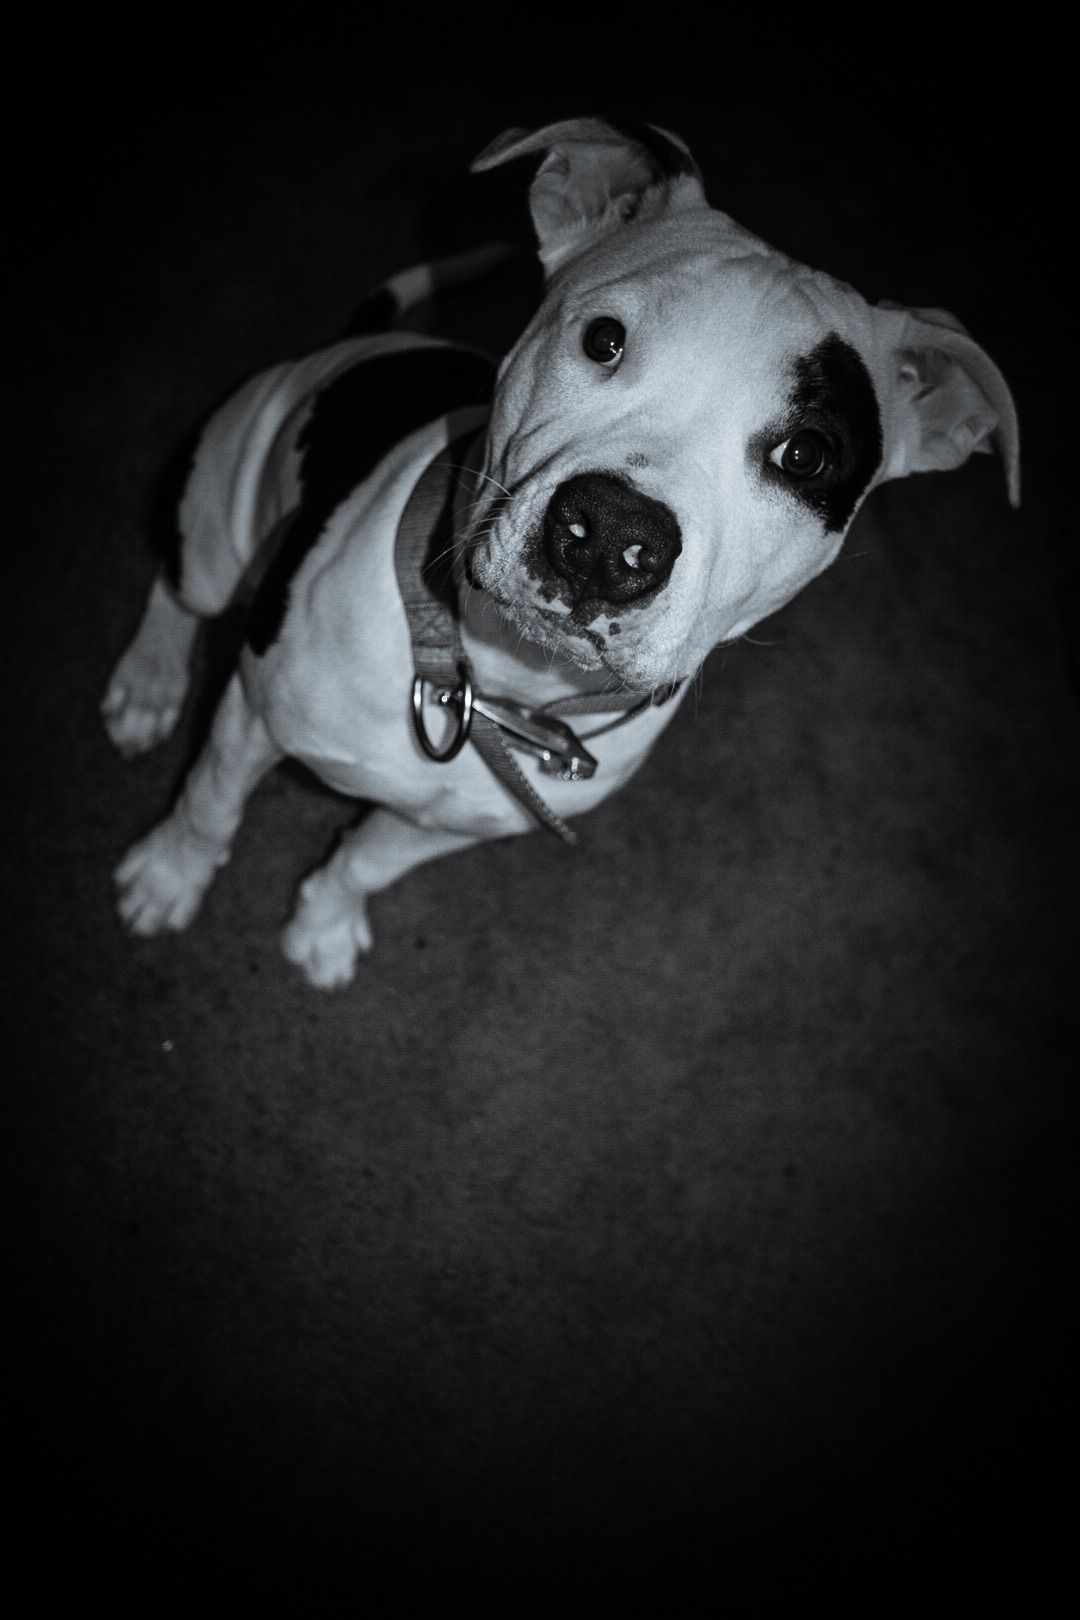 Loki The Pitty Pup Pitbull Pitbullpuppy Pup Animals Creatures